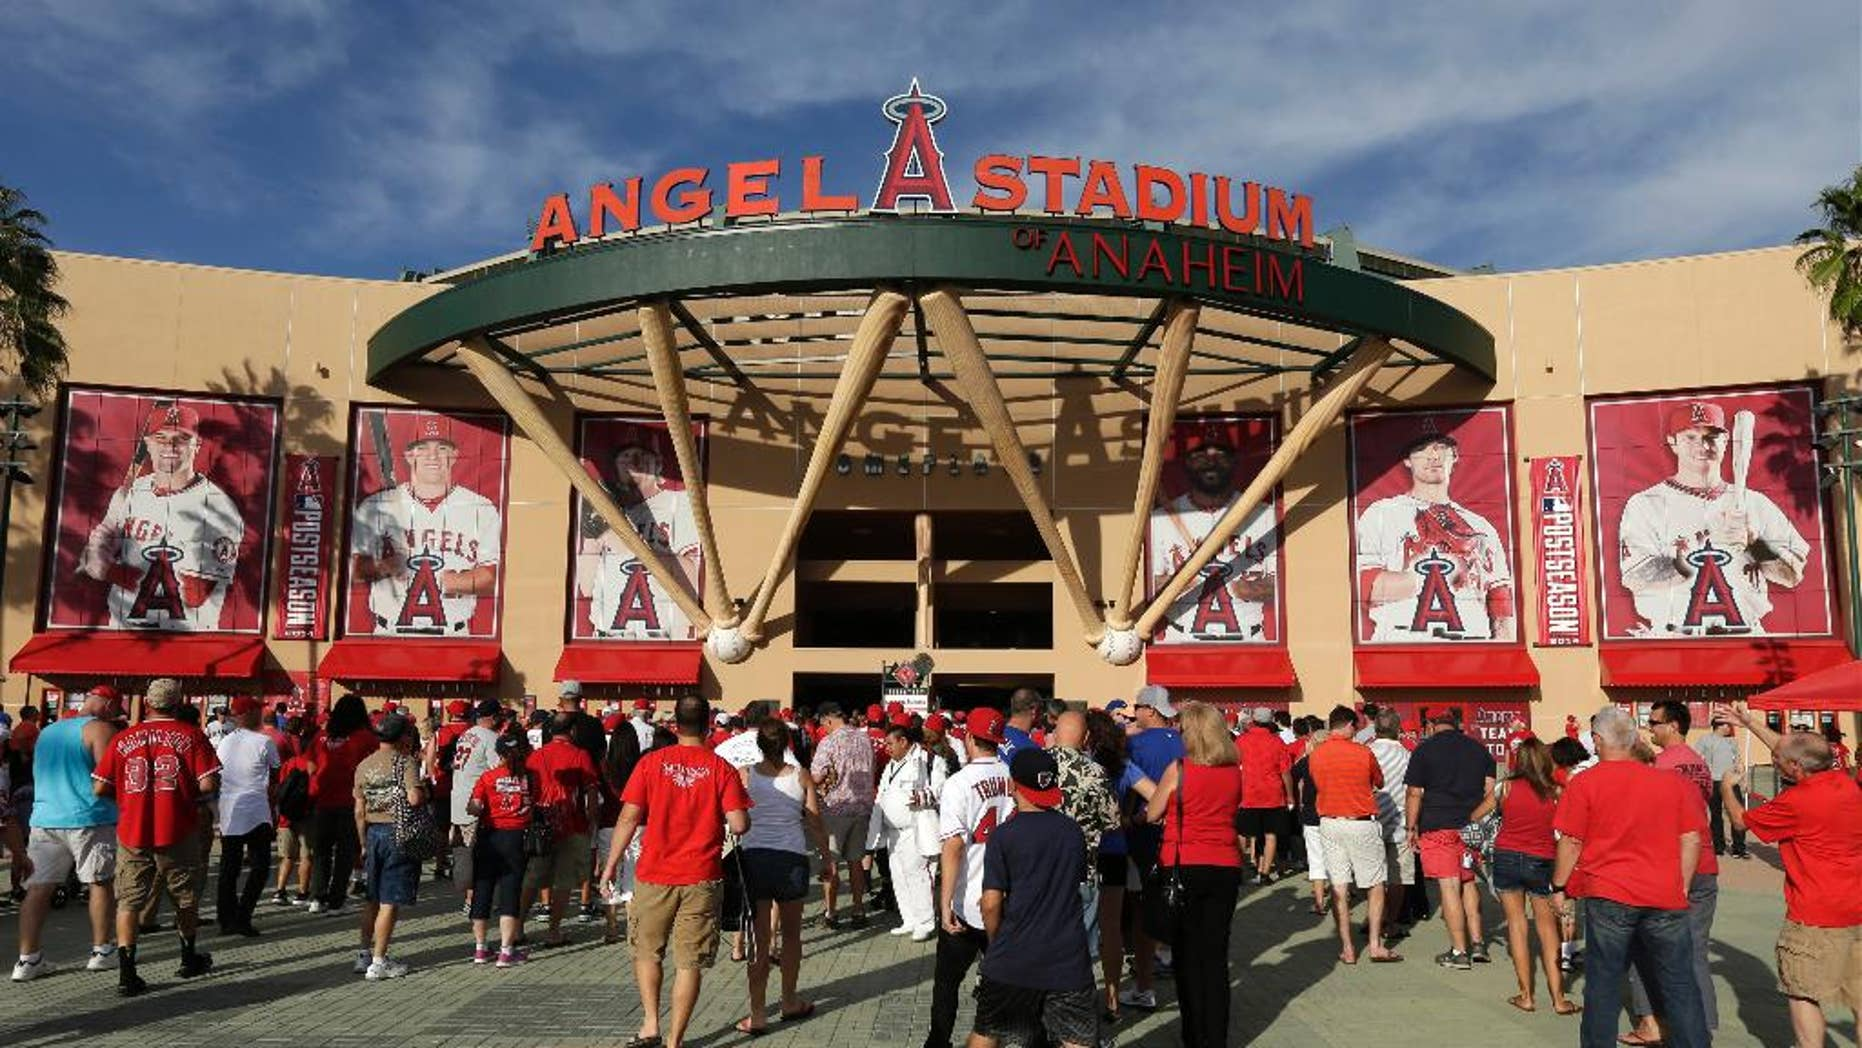 FILE - In this Oct. 3, 2014, file photo, fans enter Angel Stadium of Anaheim before Game 2 of baseball's AL Division Series between the Los Angeles Angels and the Kansas City Royals in Anaheim, Calif. In Southern California, police are looking Monday, Oct,. 6 for three men suspected of brutally beating a man in the Angels Stadium parking lot after the Angels' playoff night game on Friday, Oct. 3. (AP Photo/Gregory Bull, File)